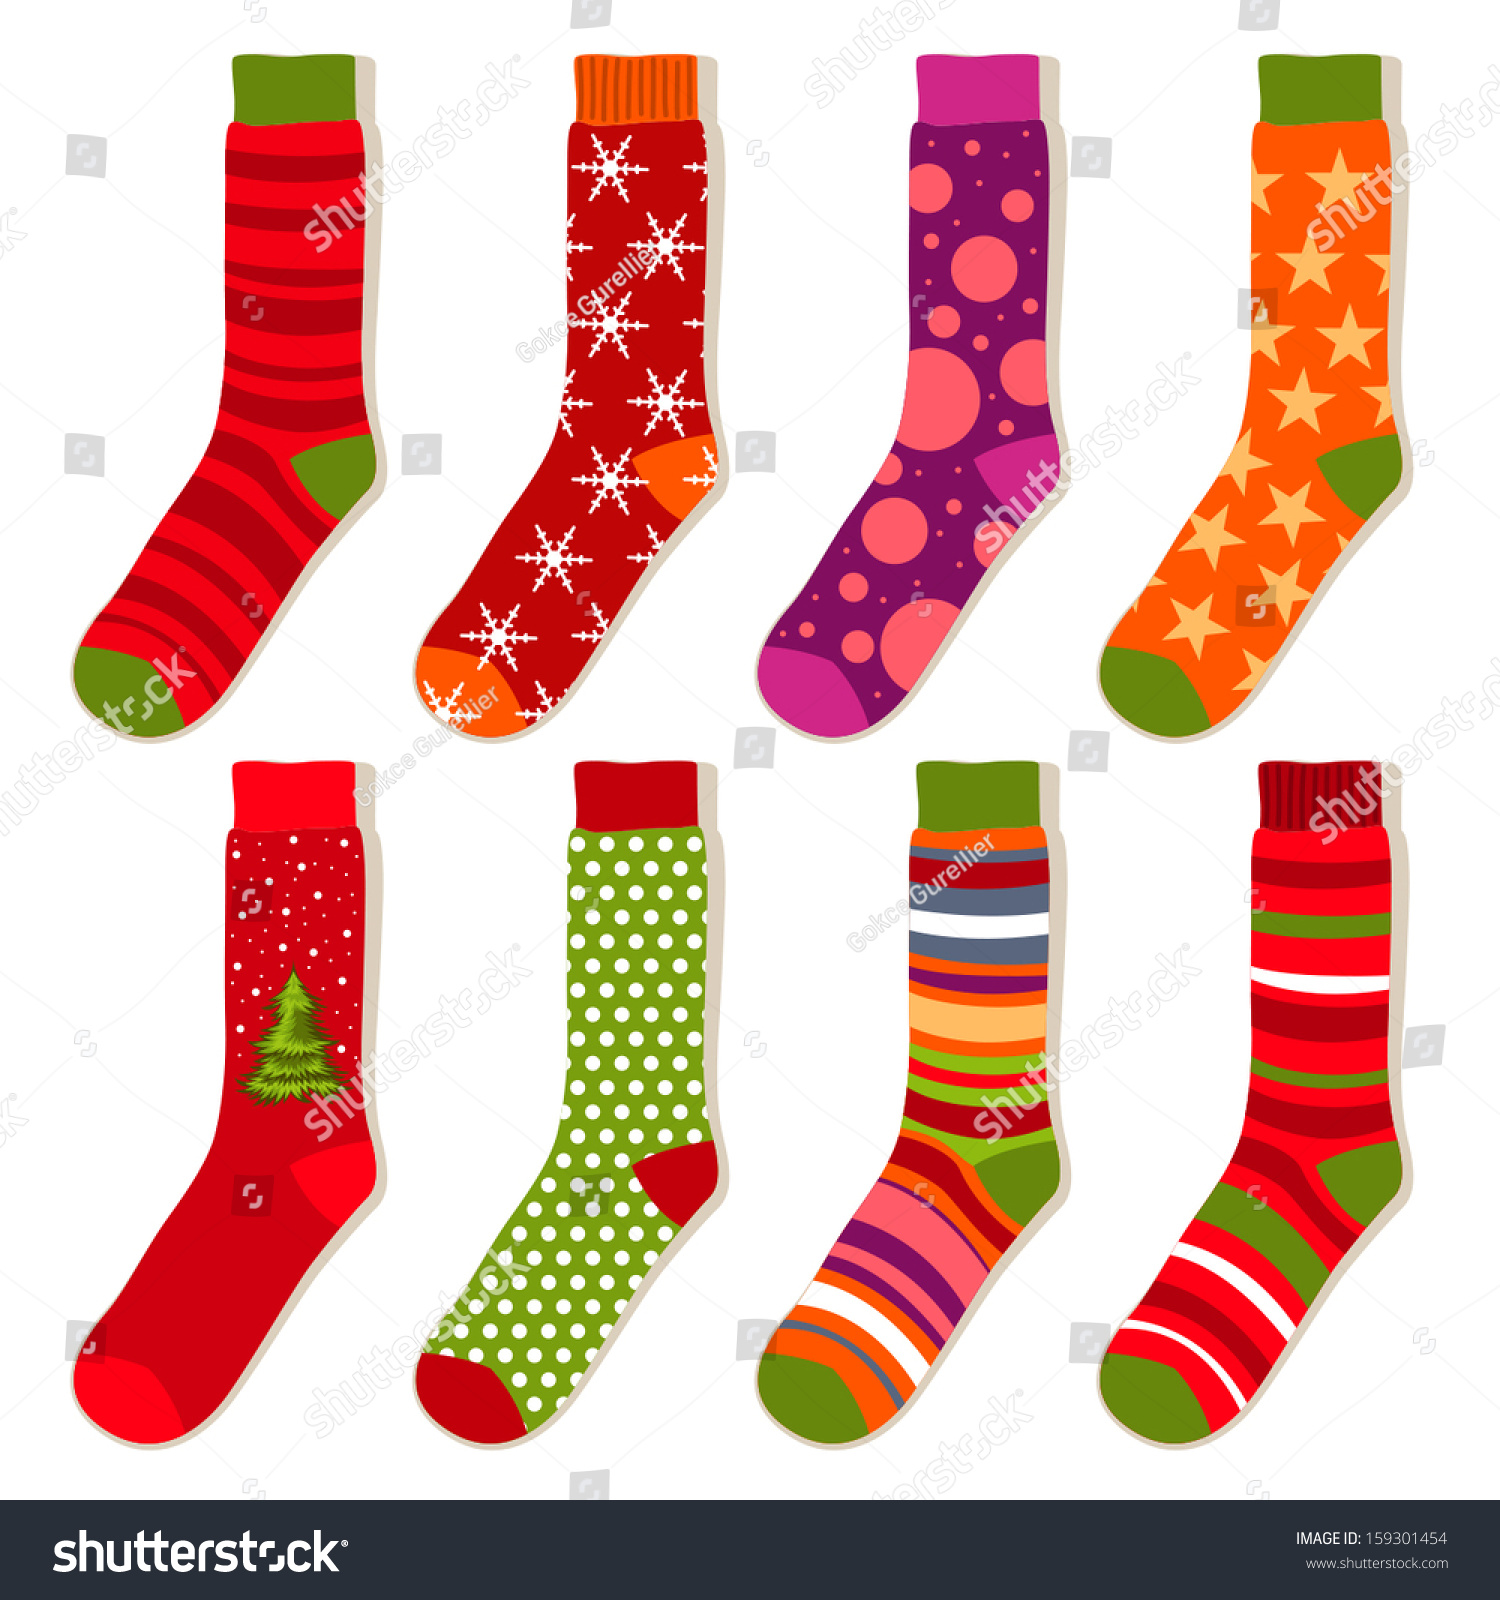 Christmas Stockings Clipart Free Stock Vector Vector Christmas Stockings